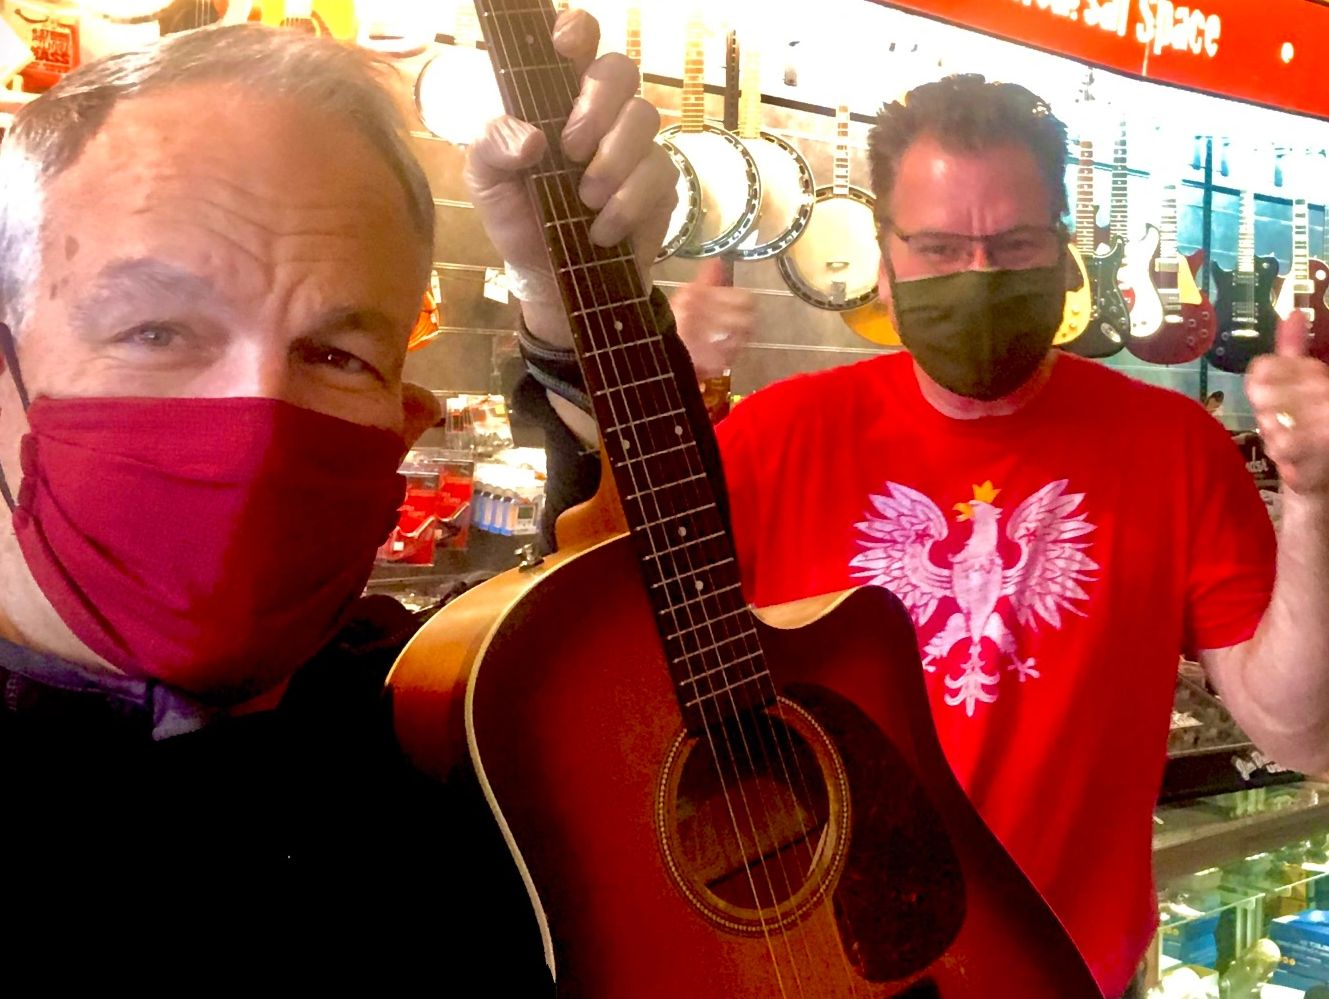 Get that guitar playing right by the Masked Men of Metro Sound! Fixing everything musical since '91!